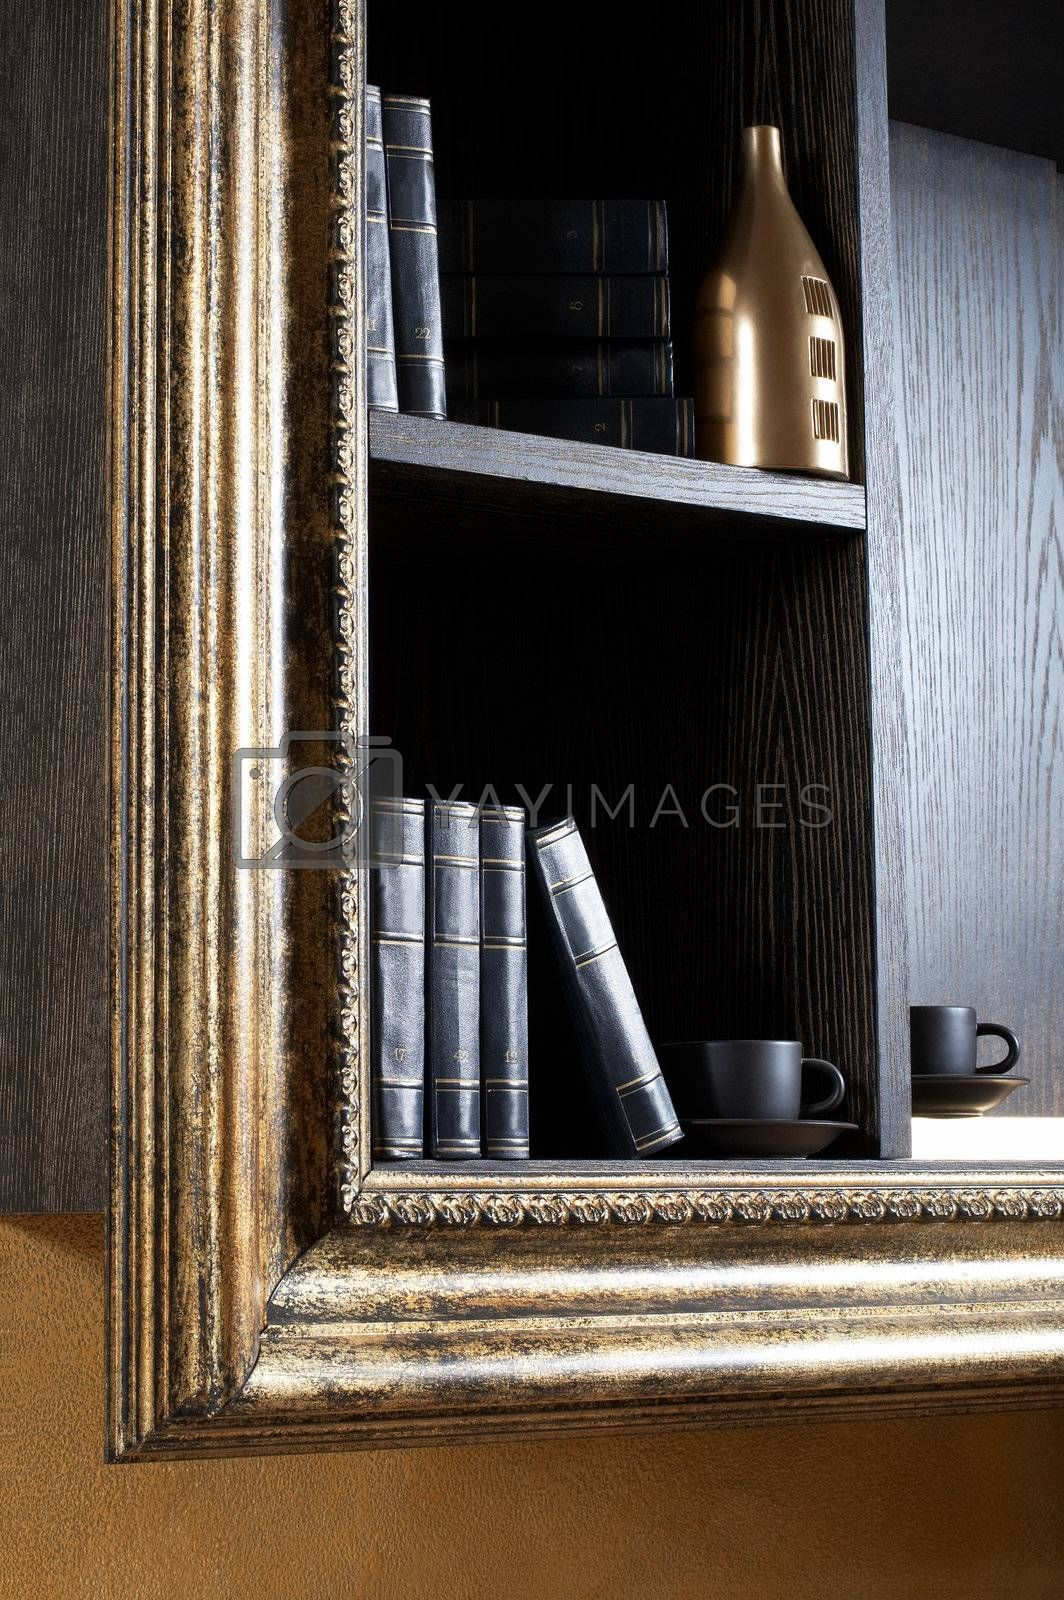 Magnificent shelf with books, cups and a bottle